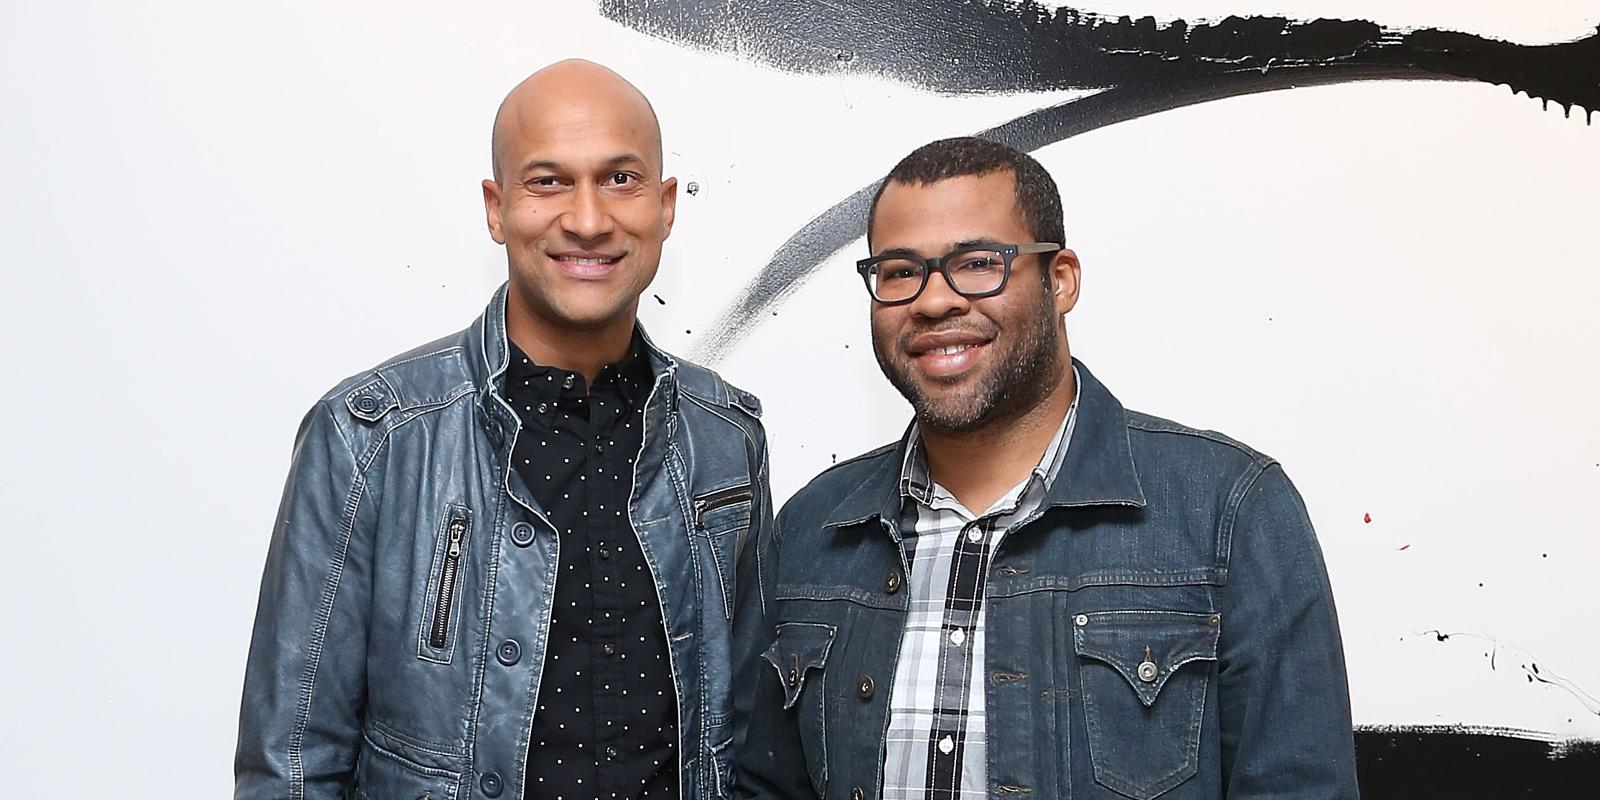 Get Out's Jordan Peele is reuniting with comedy partner Keegan Michael Key for Netflix movie